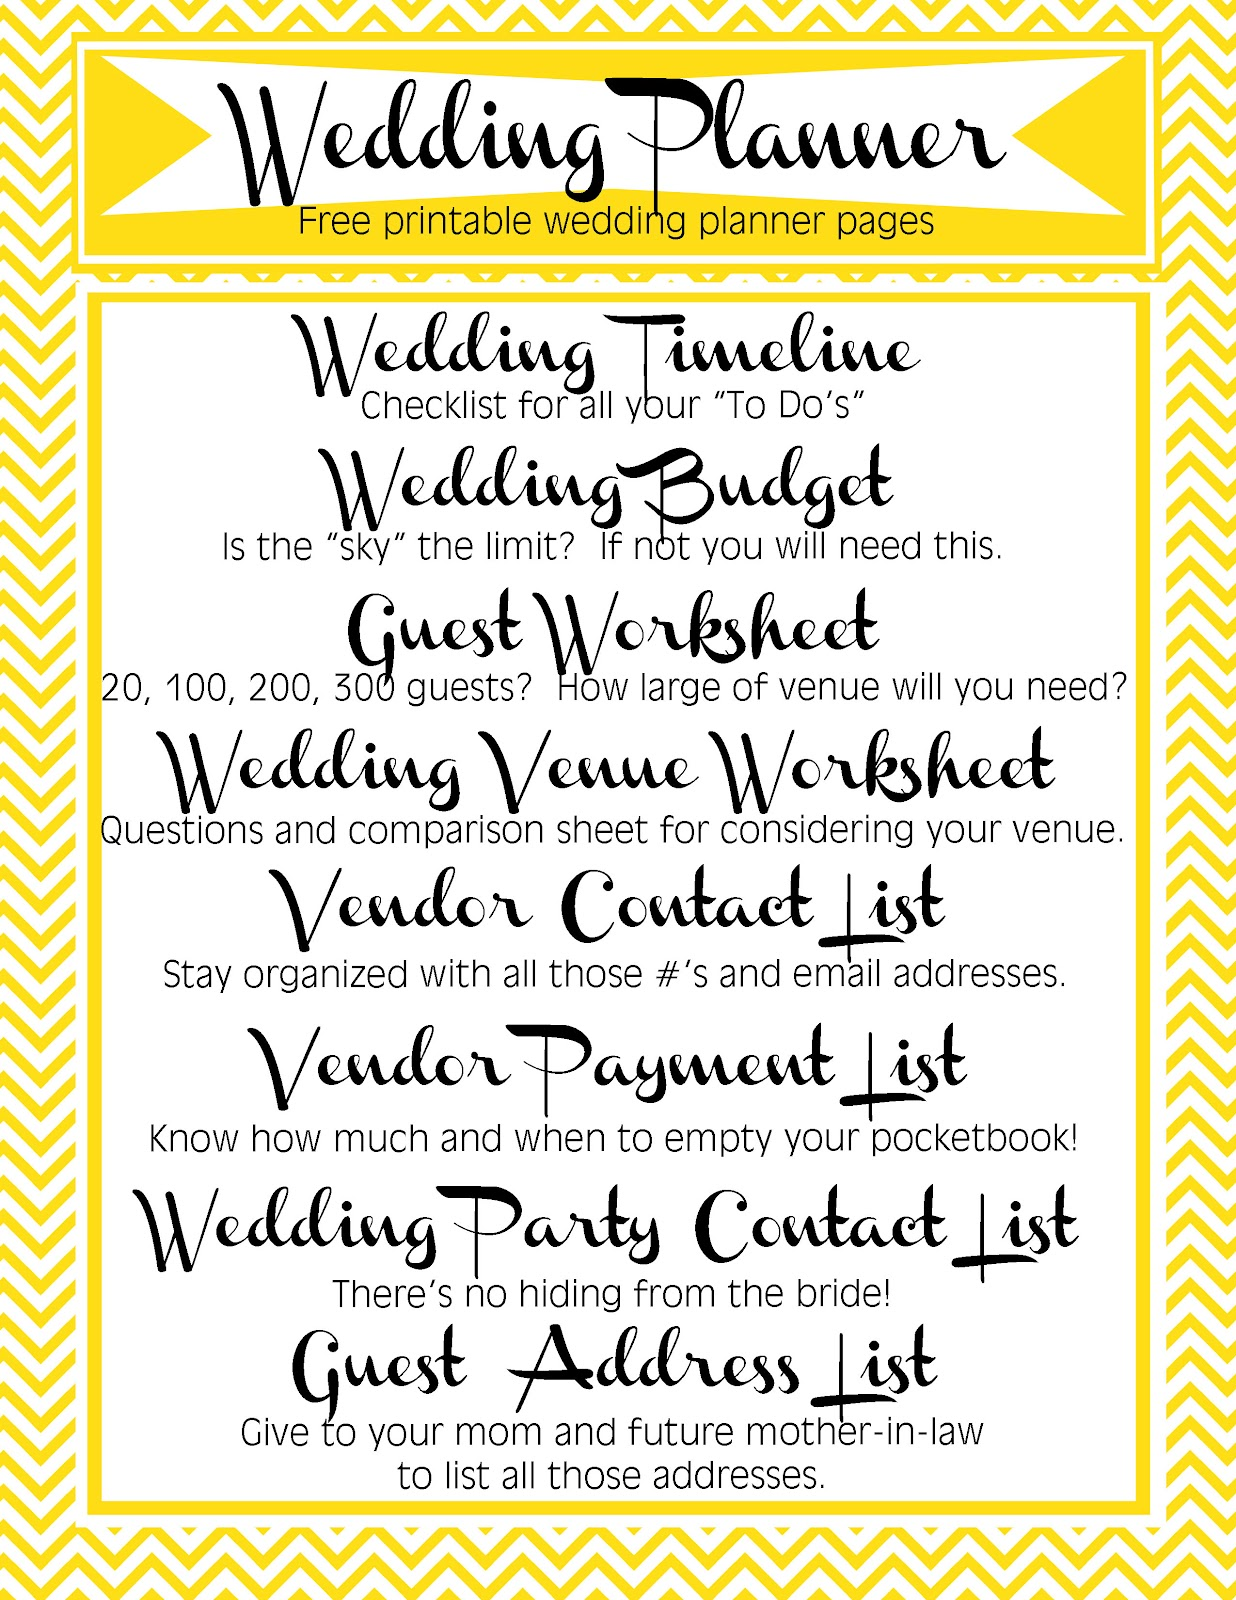 Trololo Blogg The Yellow Wallpaper Quotes Marriage